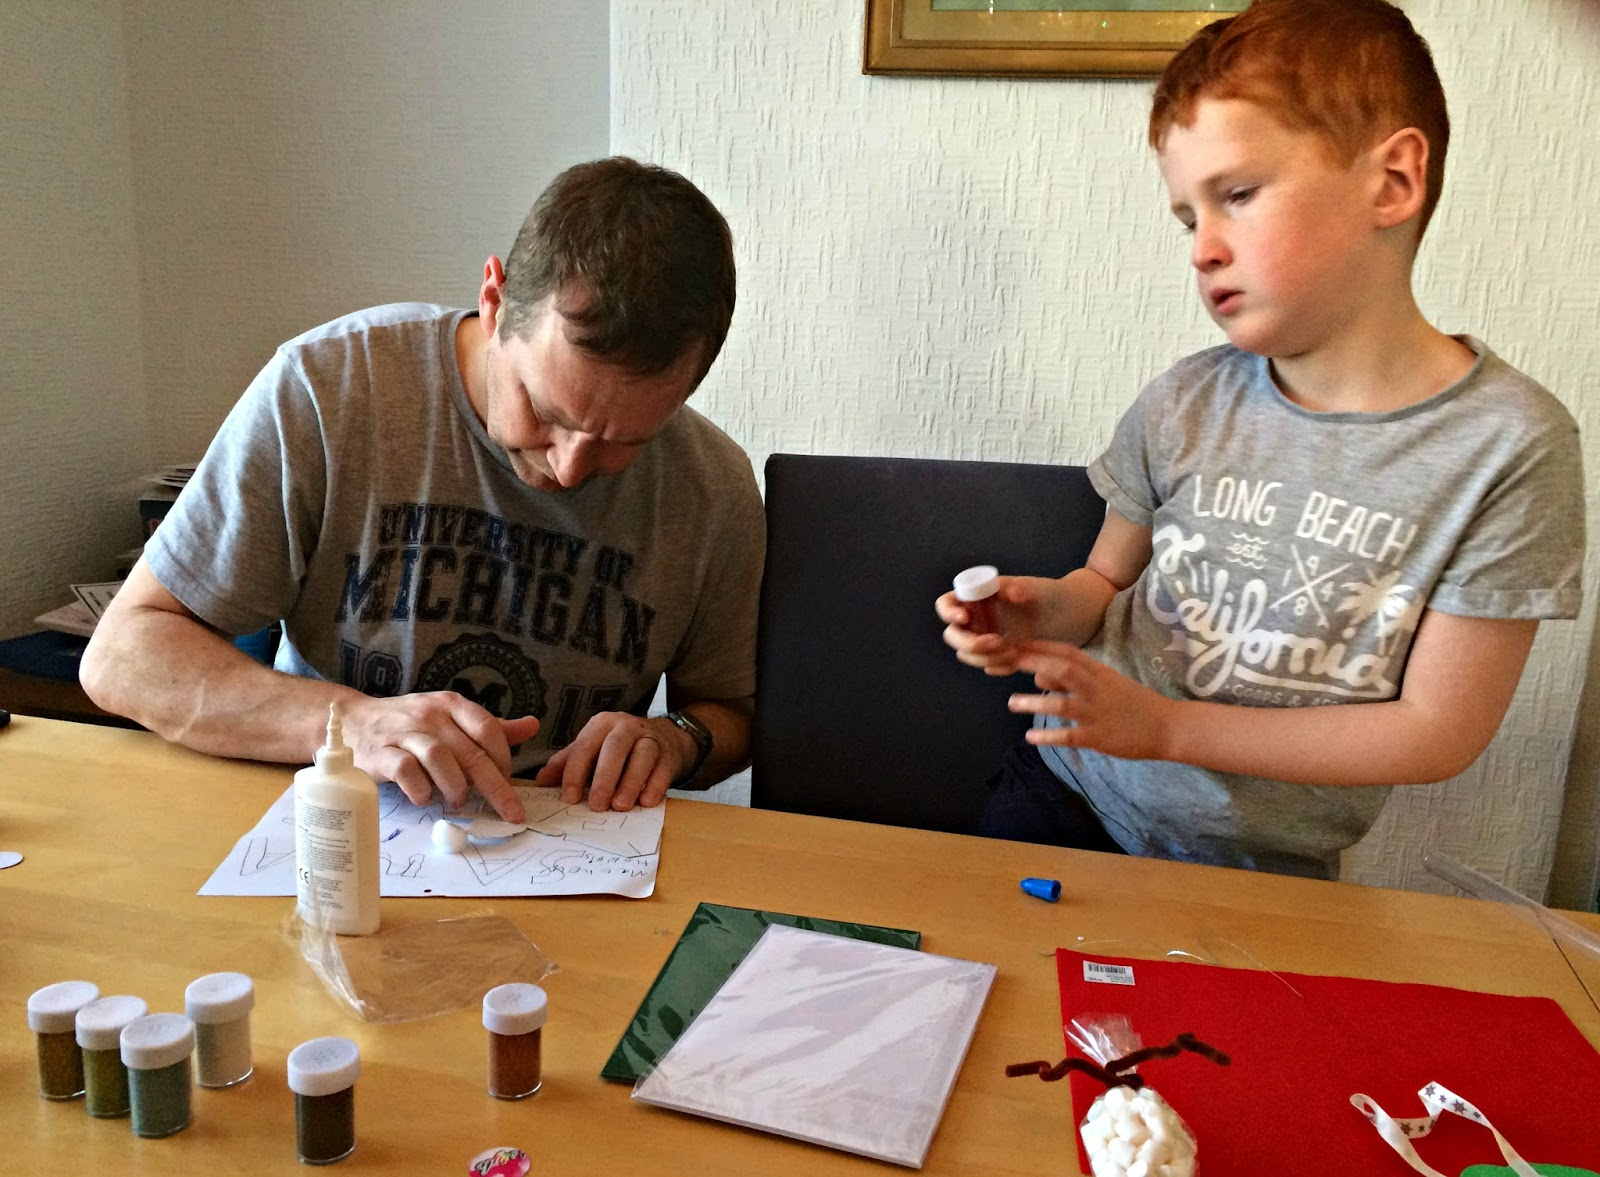 Mat and Ieuan making a Santa Claus on card with glitter